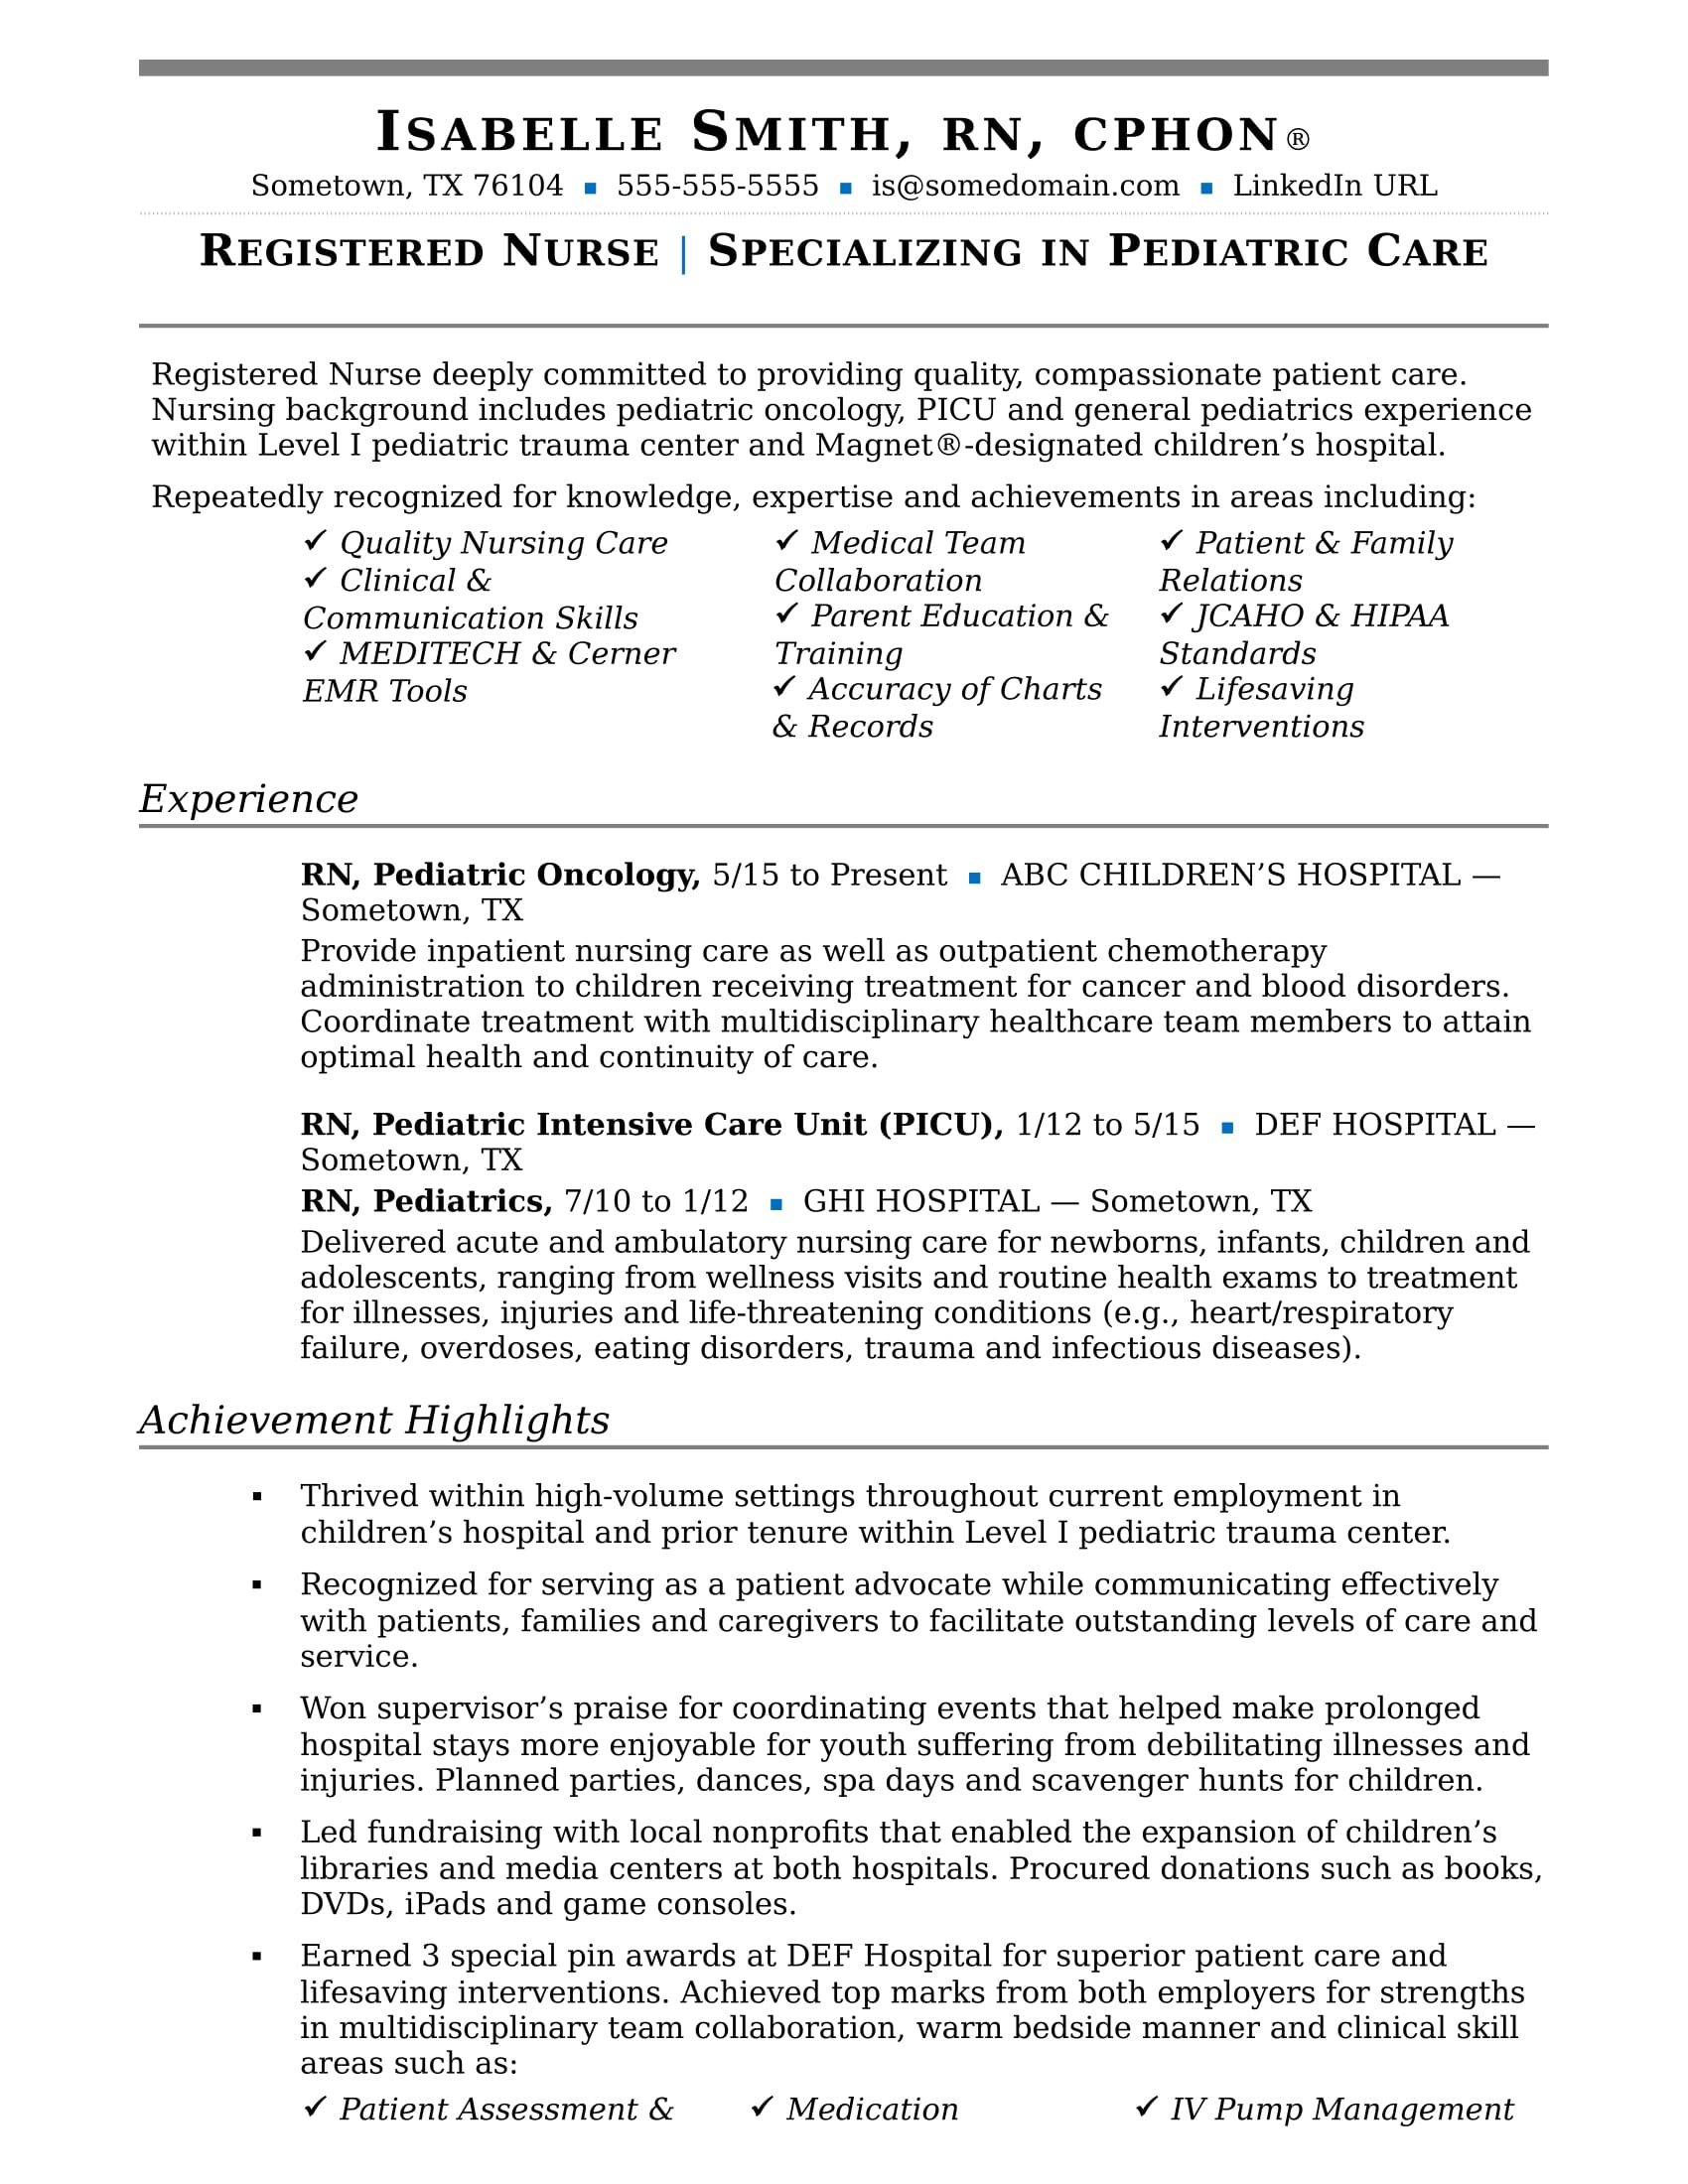 nurse resume sample monster areas of expertise for chaplain position barista counseling Resume Areas Of Expertise Resume